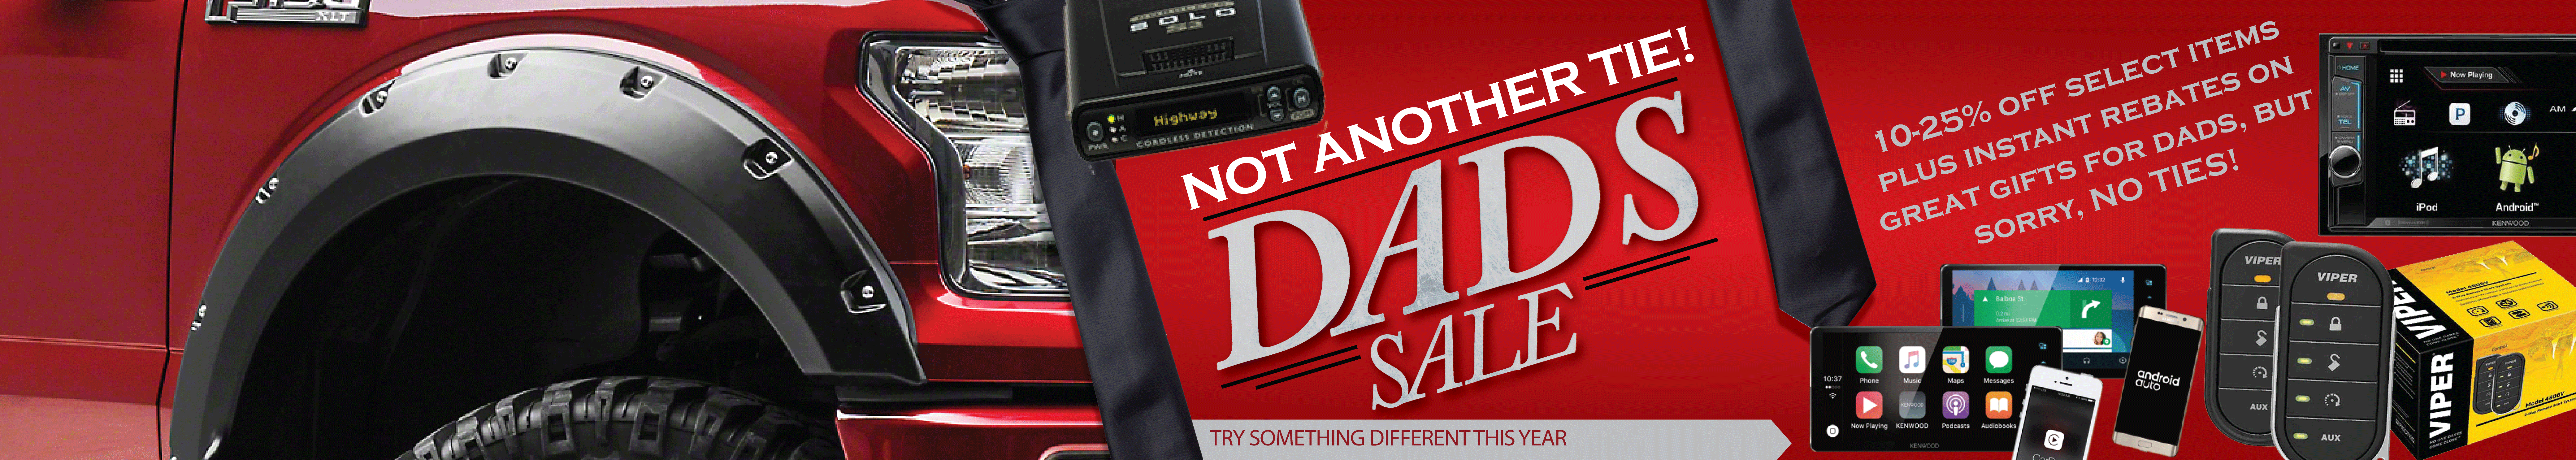 dads-sale-at-stereo-west-autotoys.png